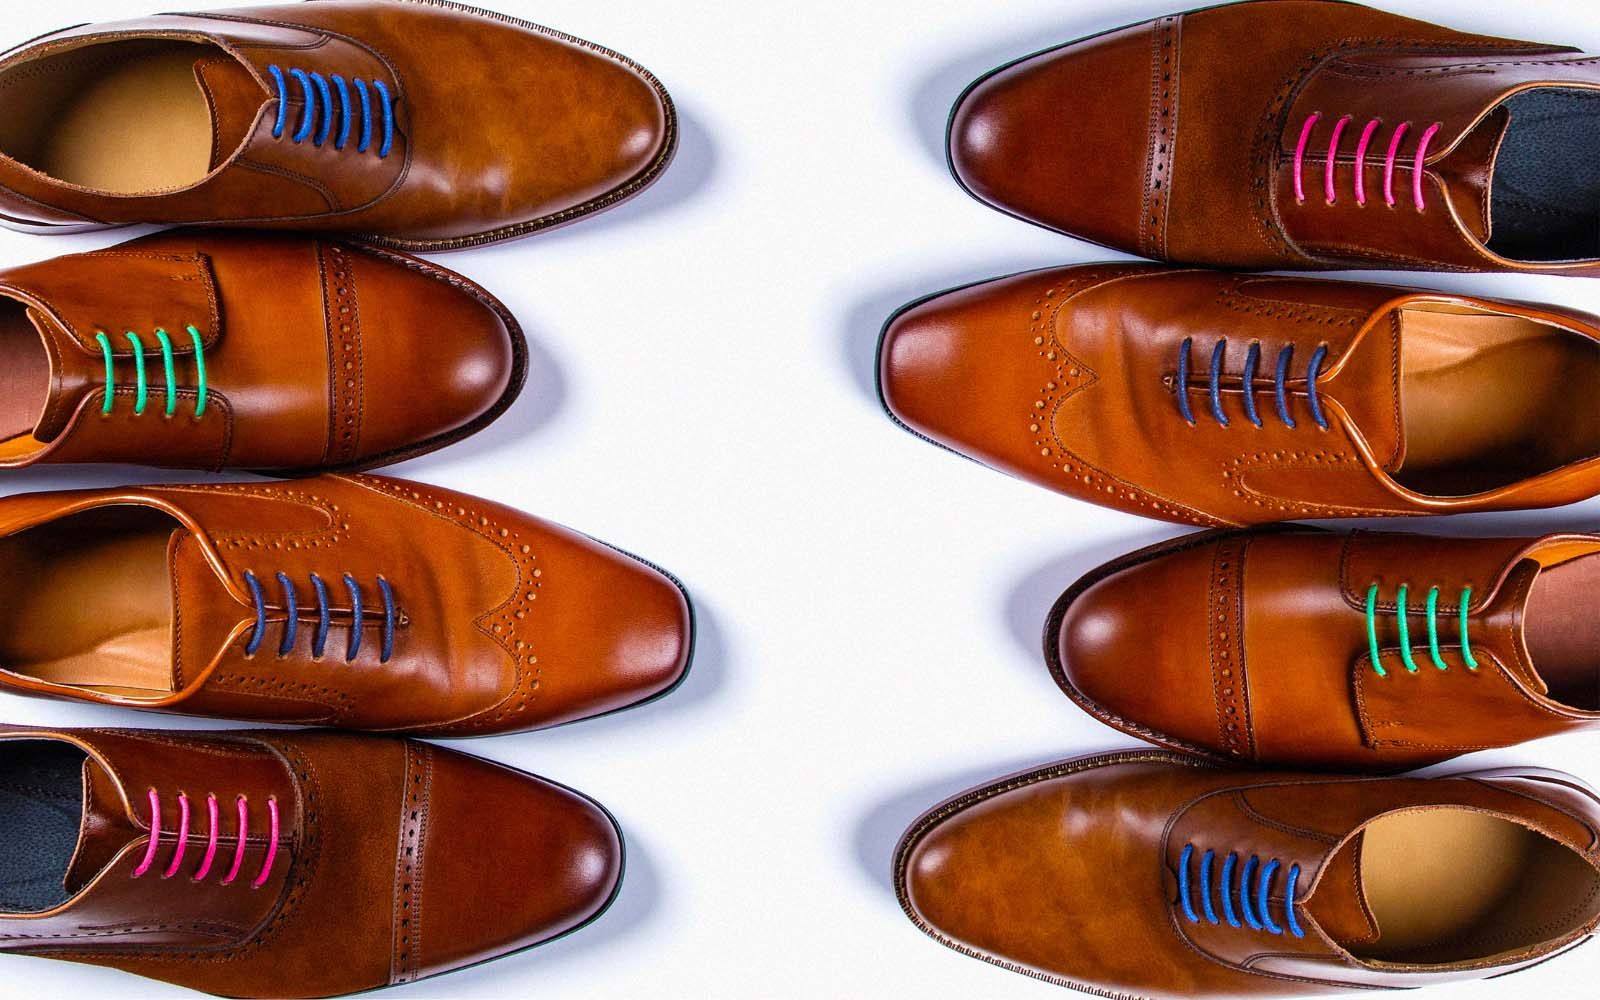 7 Ways to Look Well-dressed in Derby Shoes